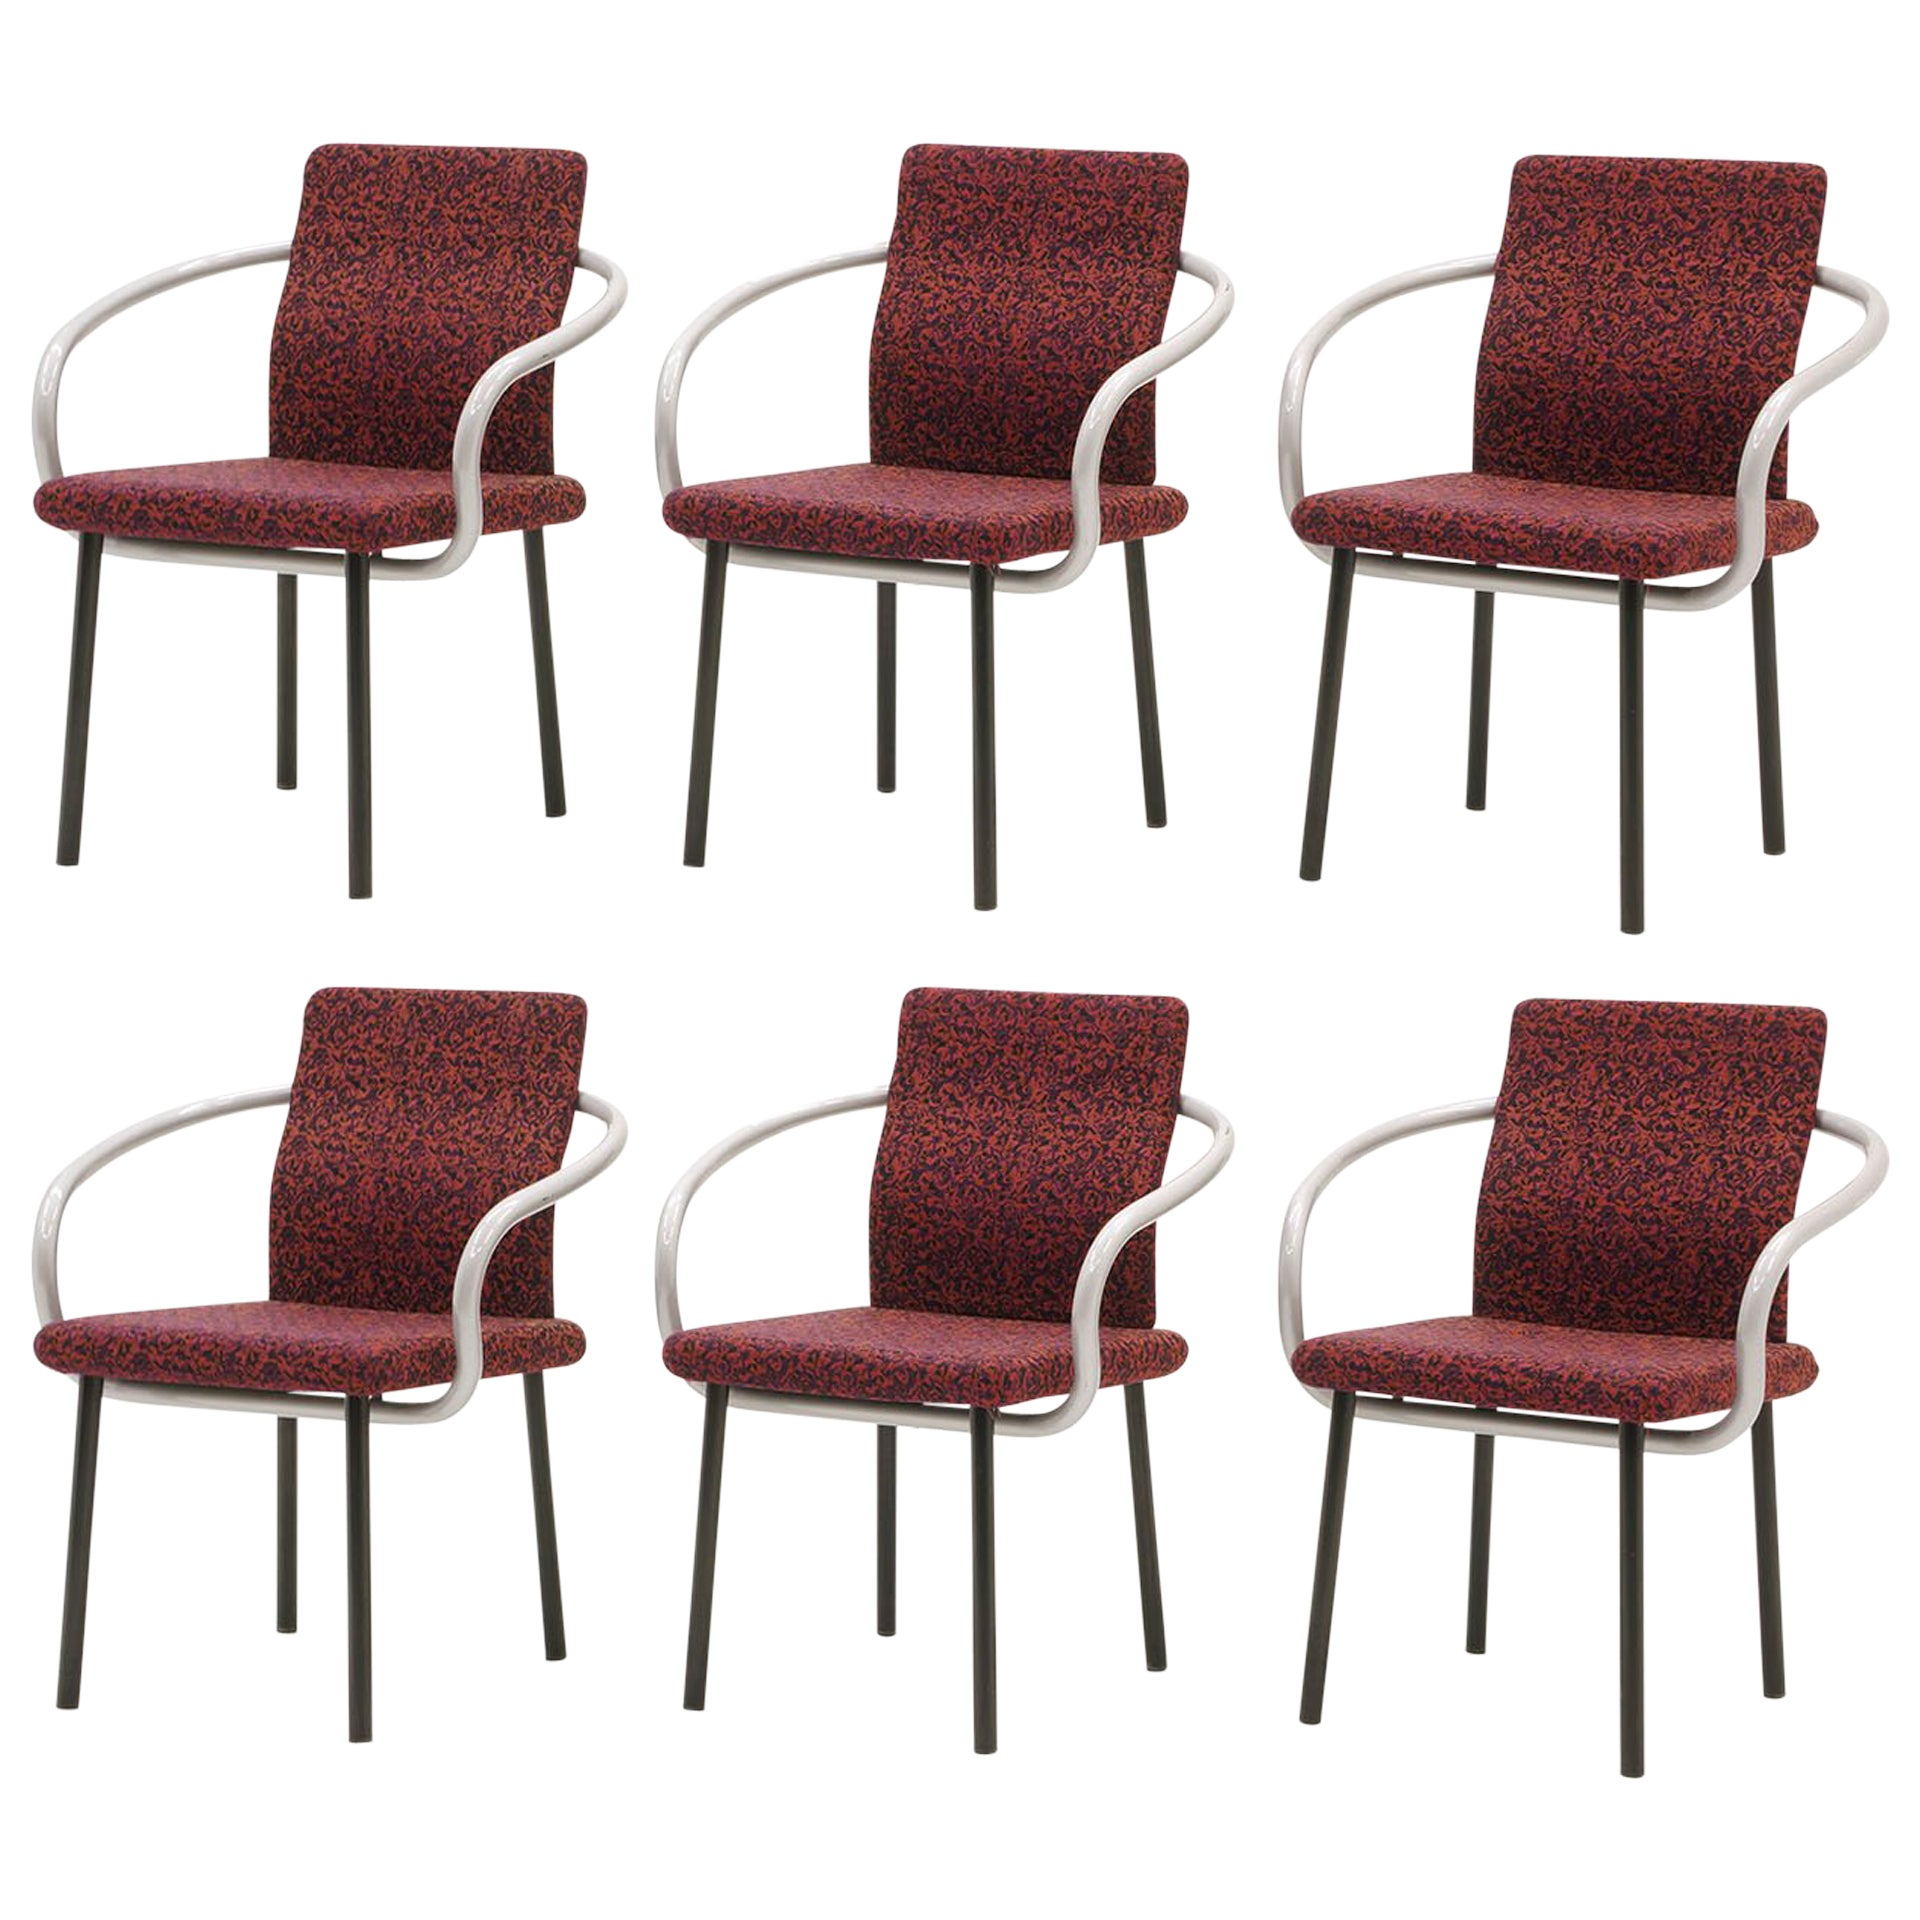 Set of Six Mandarin Dining Chairs by Ettore Sottsass for Knoll